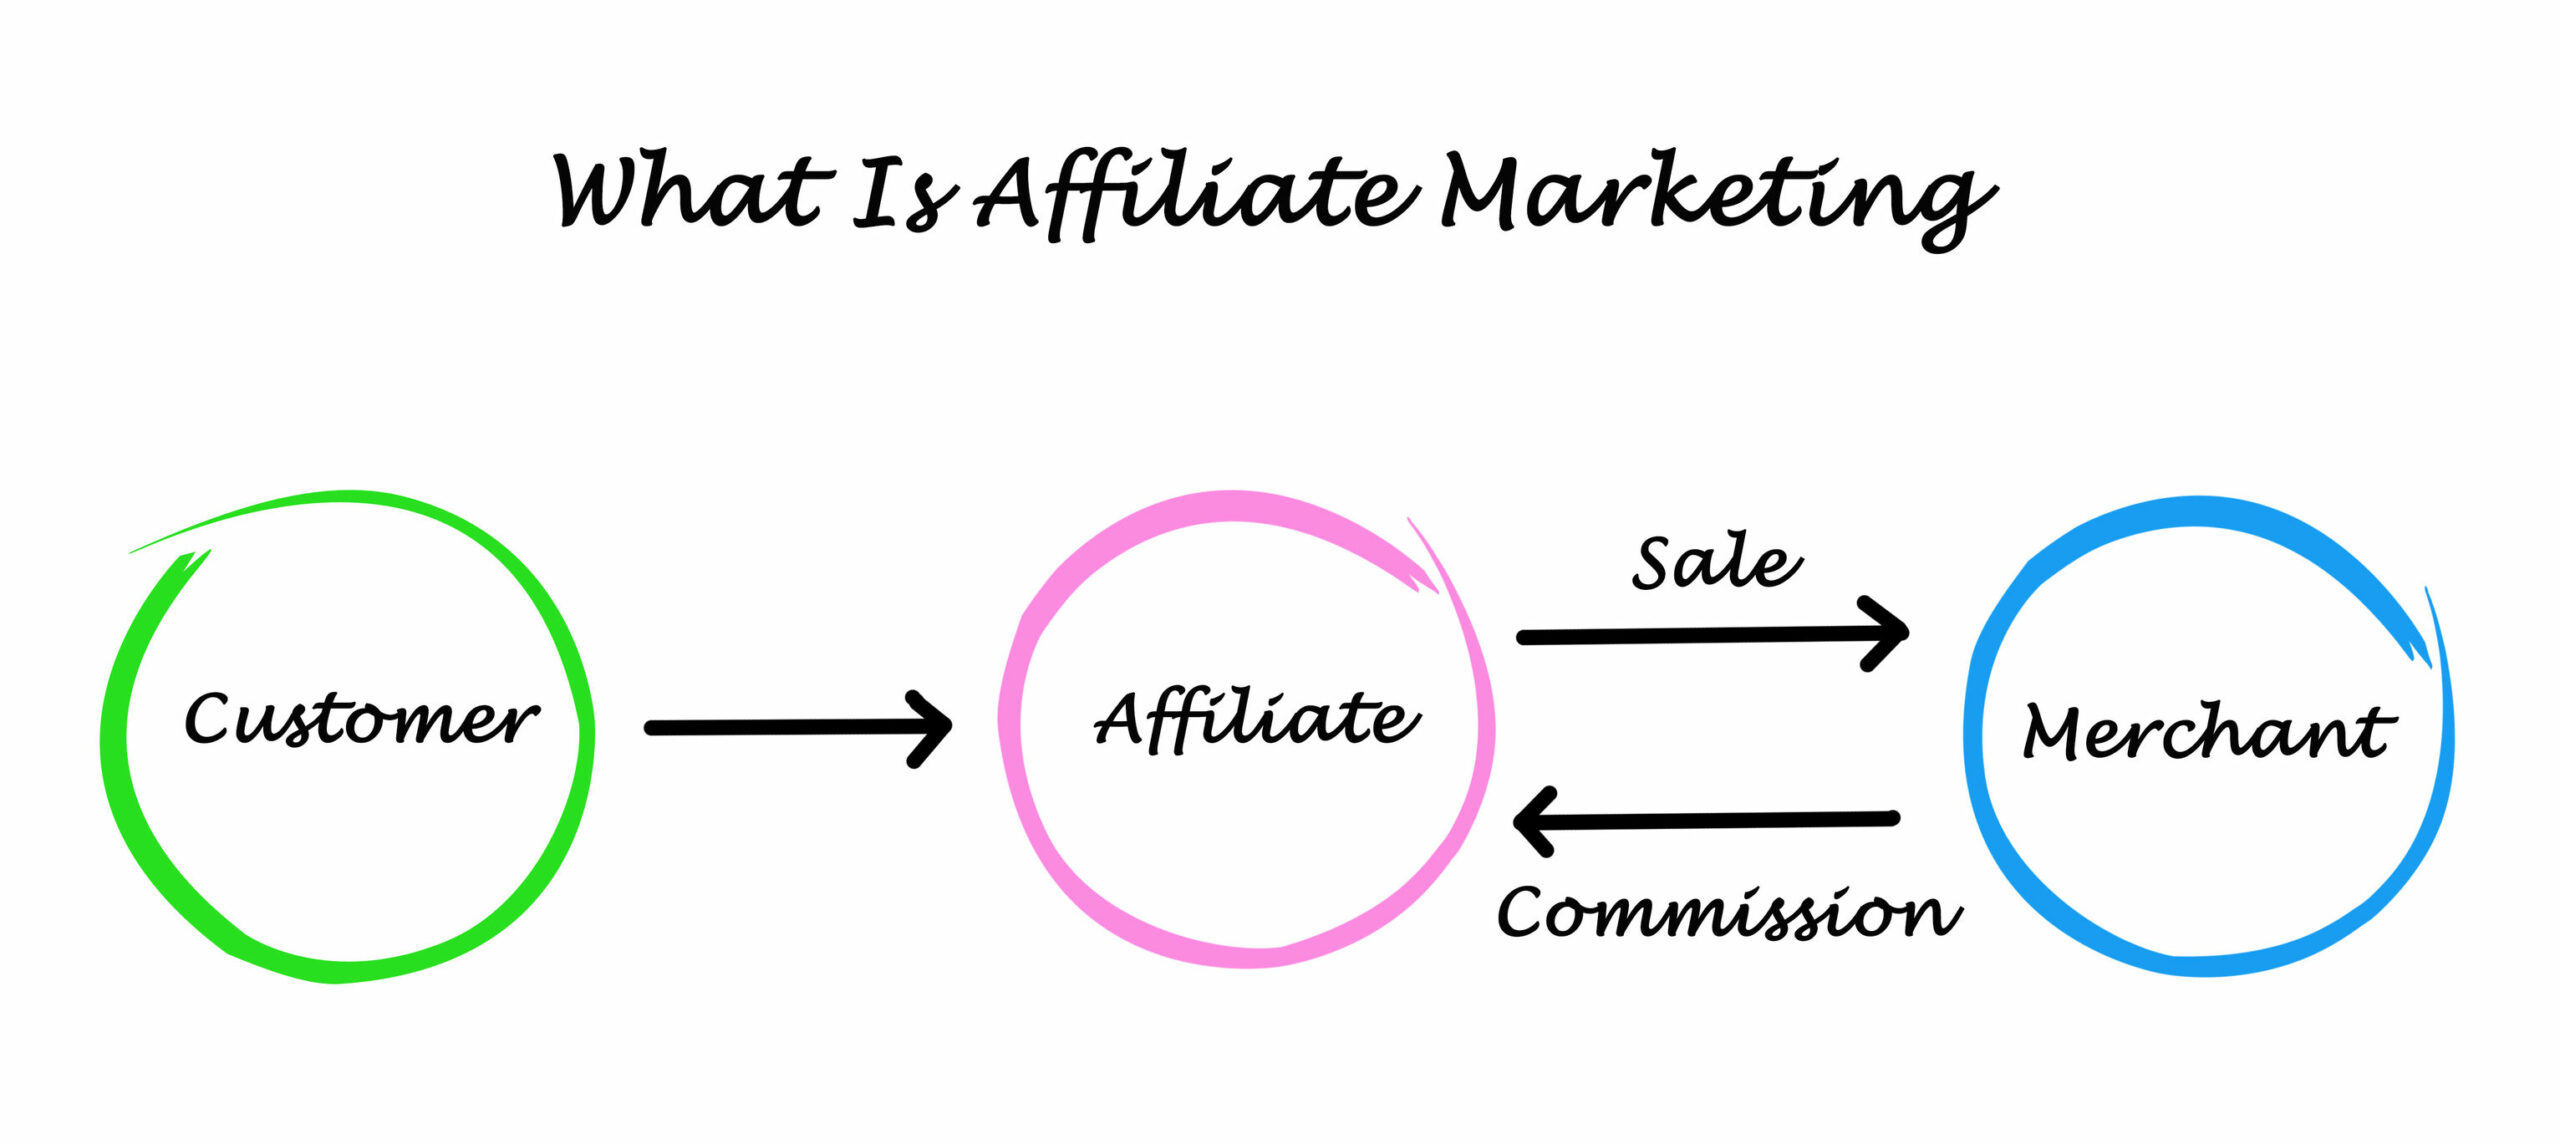 What is affiliate marketing explained image